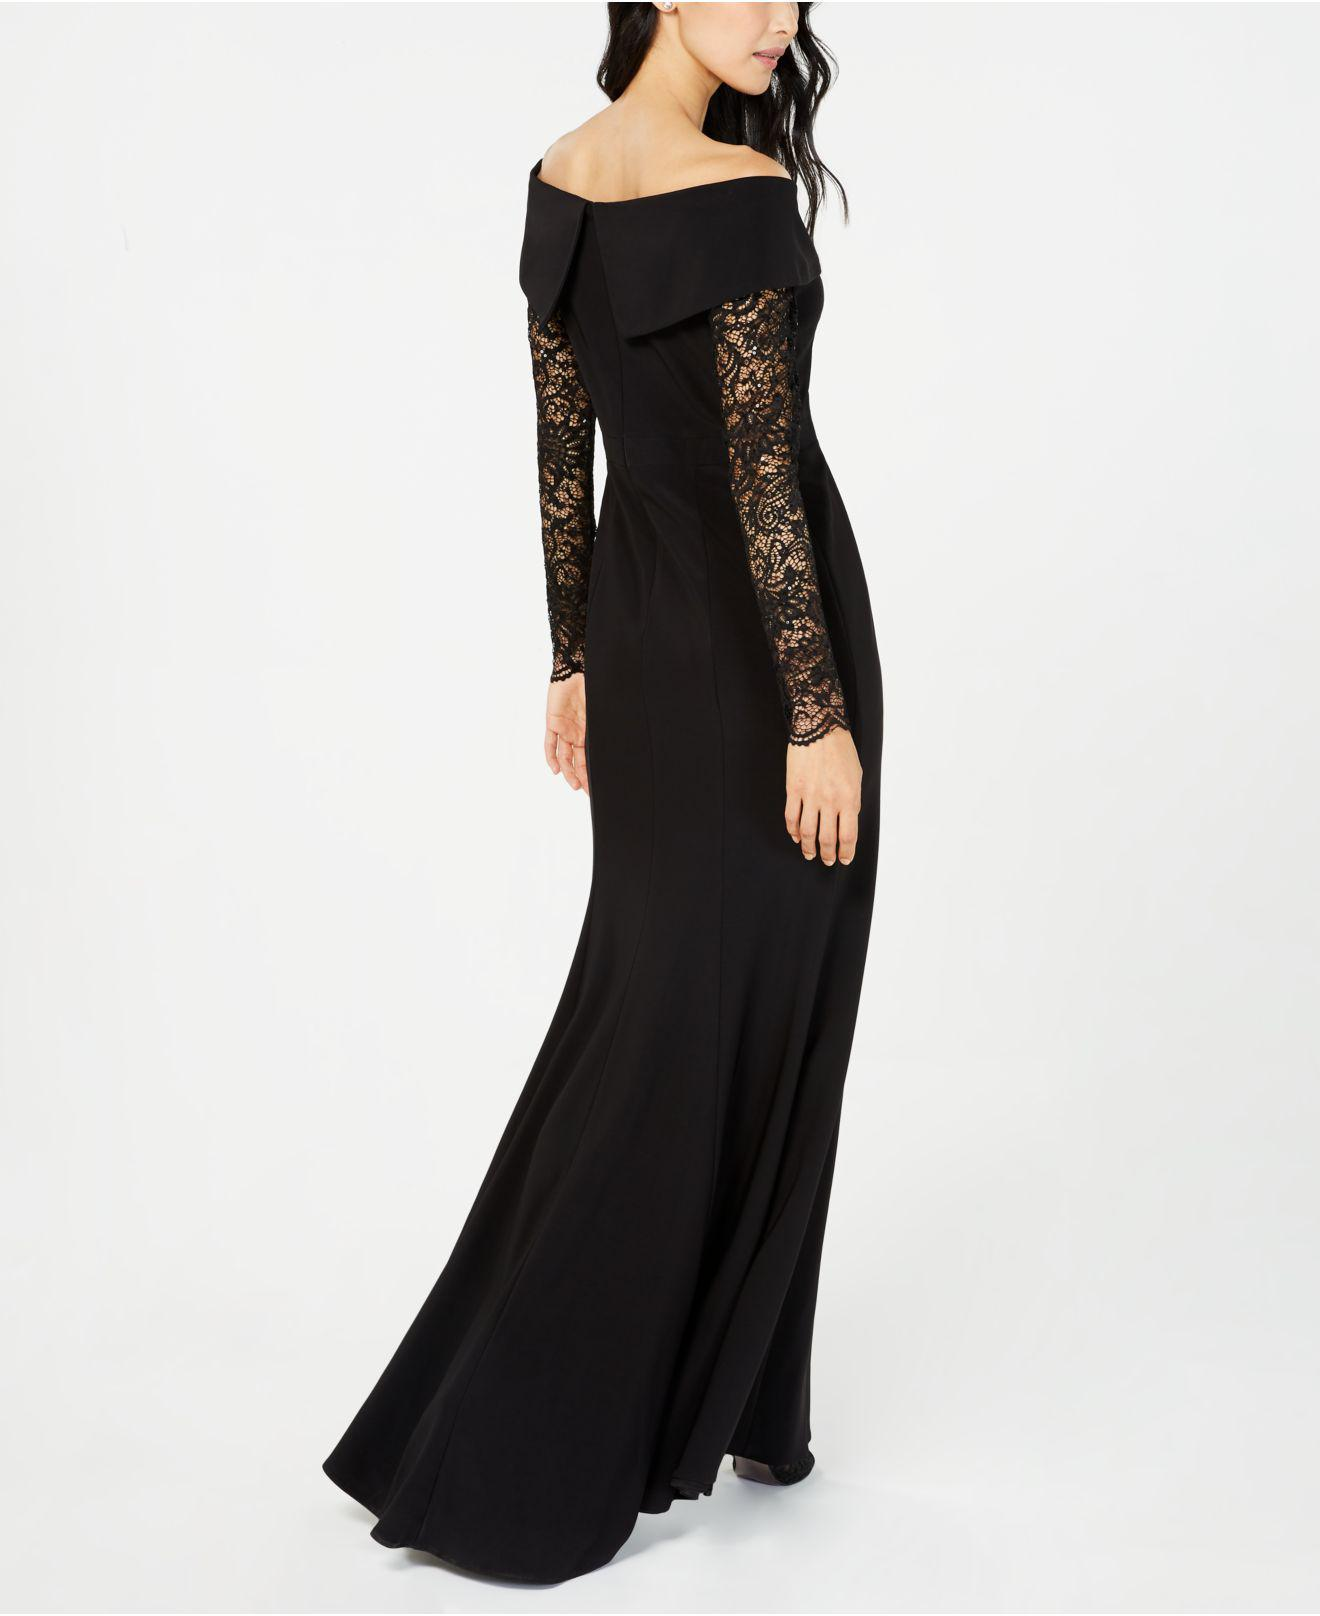 ... 518b5 d74cb Lyst - Xscape Petite Off-the-shoulder Lace-sleeve Gown in  ... 59d0cd84a1e8